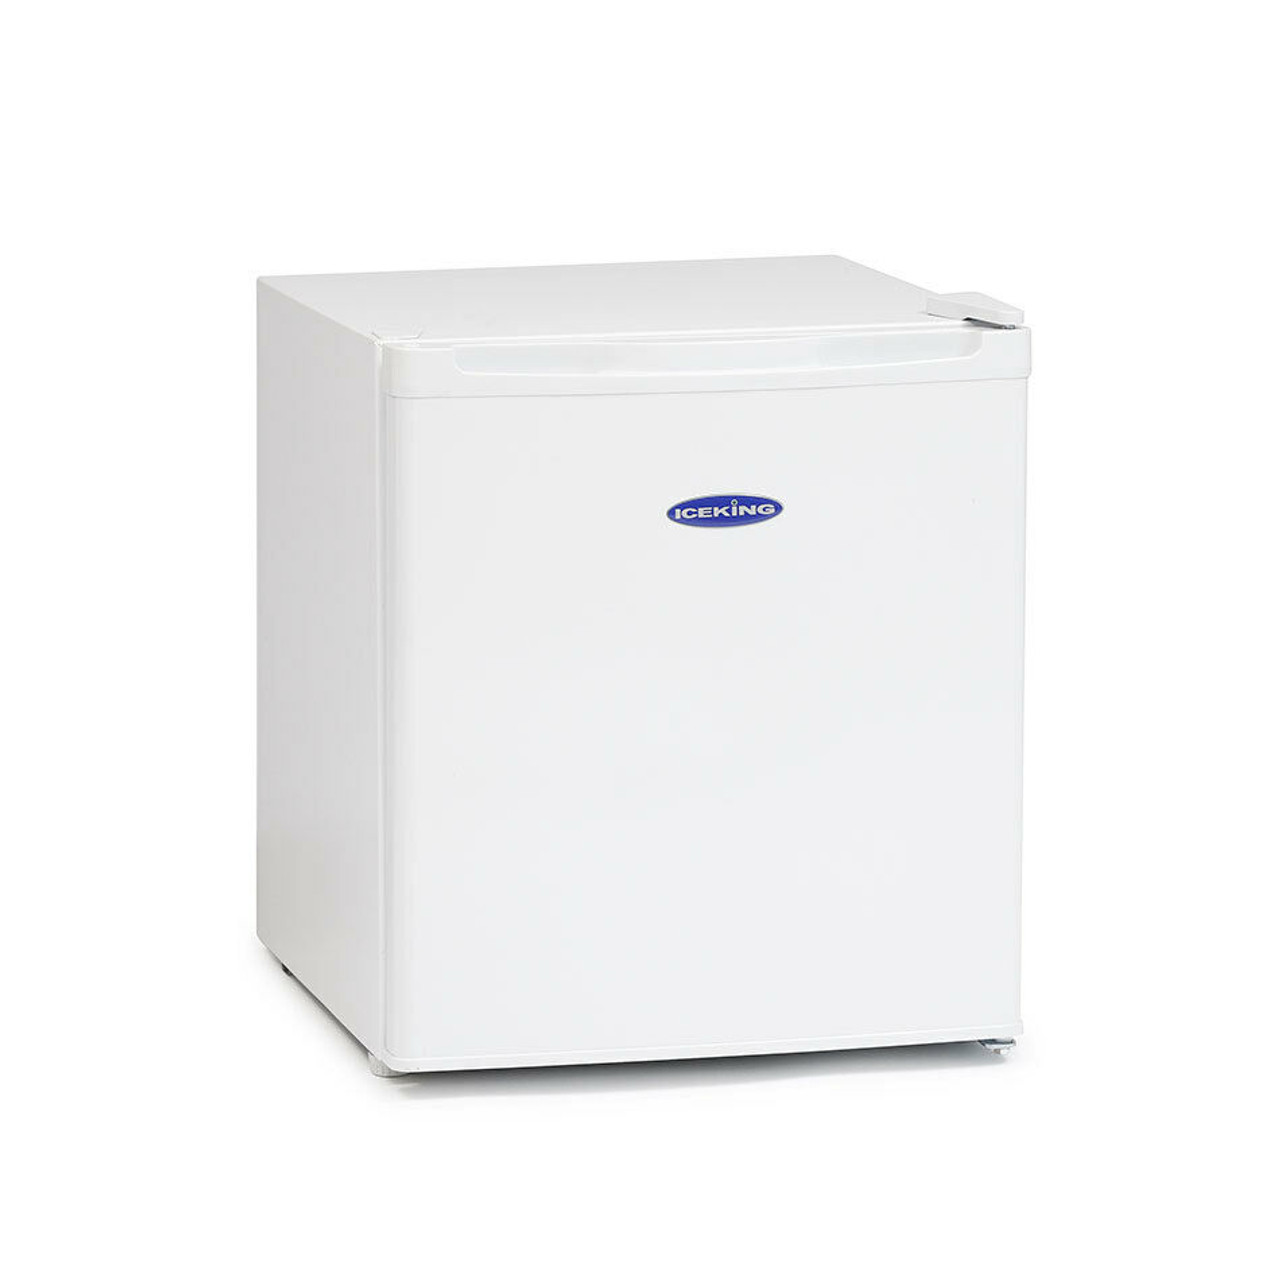 Ice King TT35AP2 34 Litre Table Top Freezer - White Product Information Key Features  Reversible door Integrated handle A+ Energy rating for extra savings 34 Litre usable capacity 41 dB noise level 2 kg freezing capacity per day